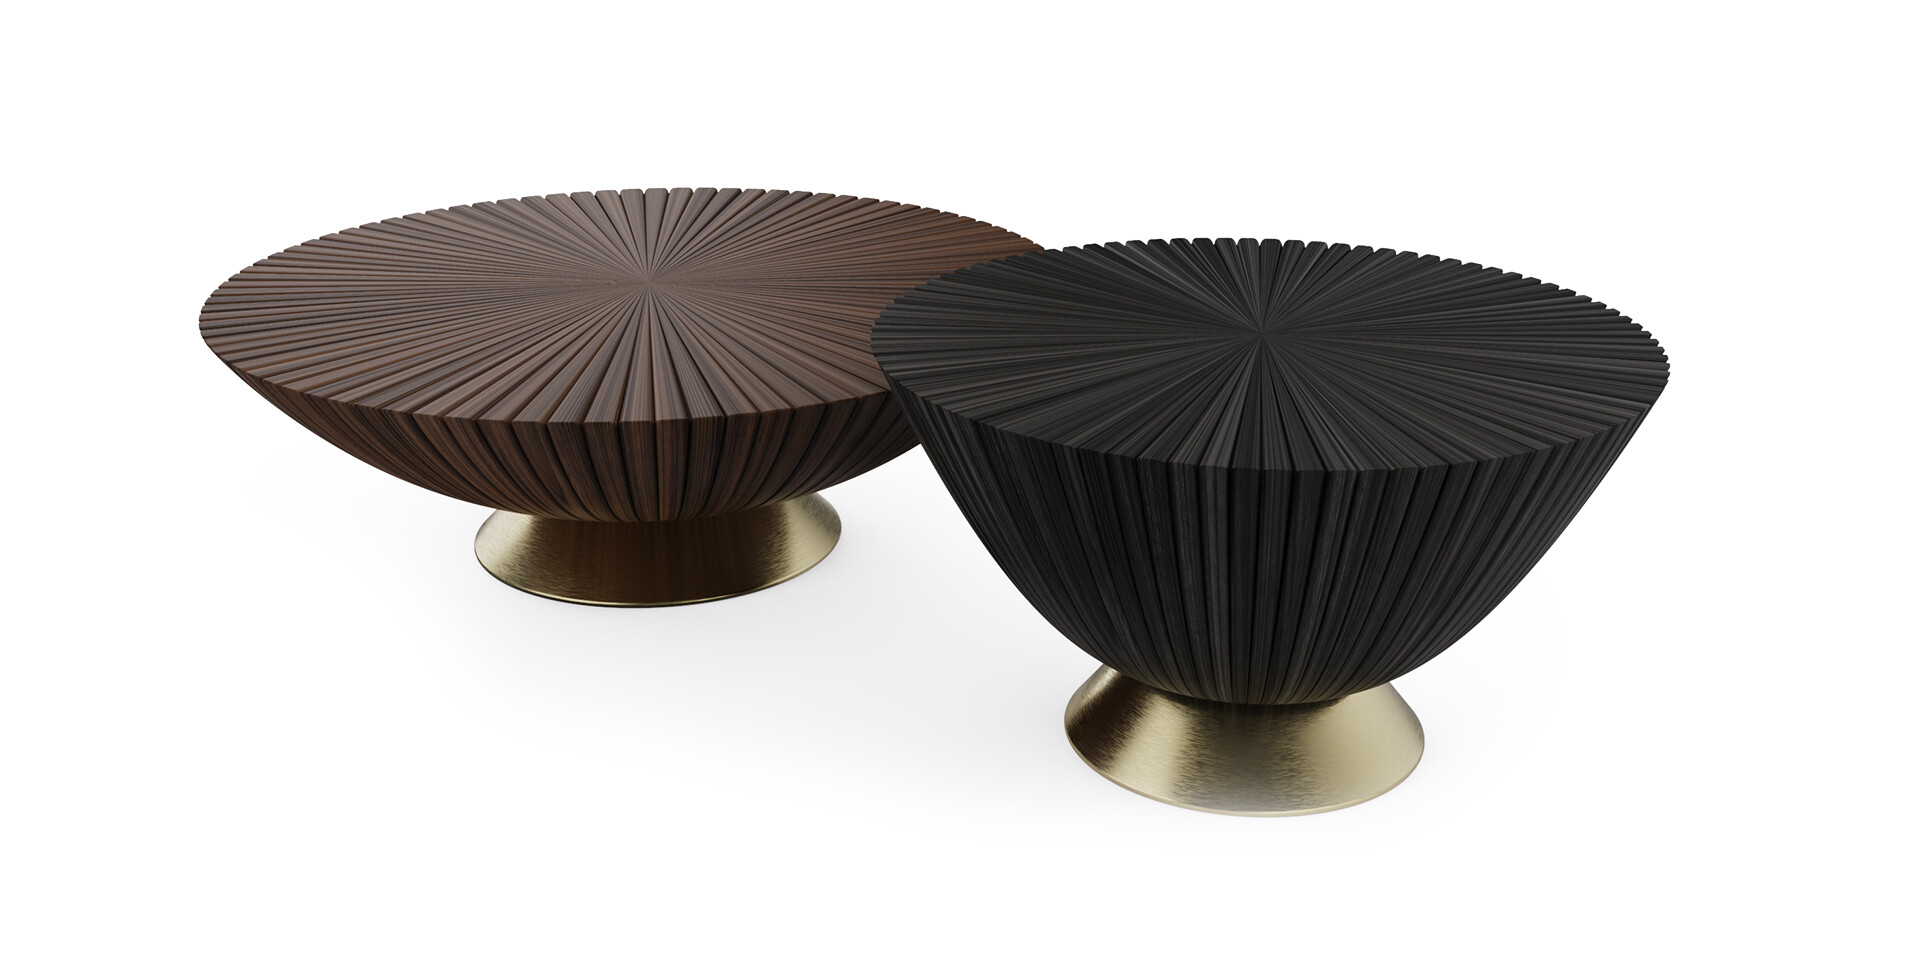 GOATHI COFFEE TABLE - Front Top View - ALMA de LUCE